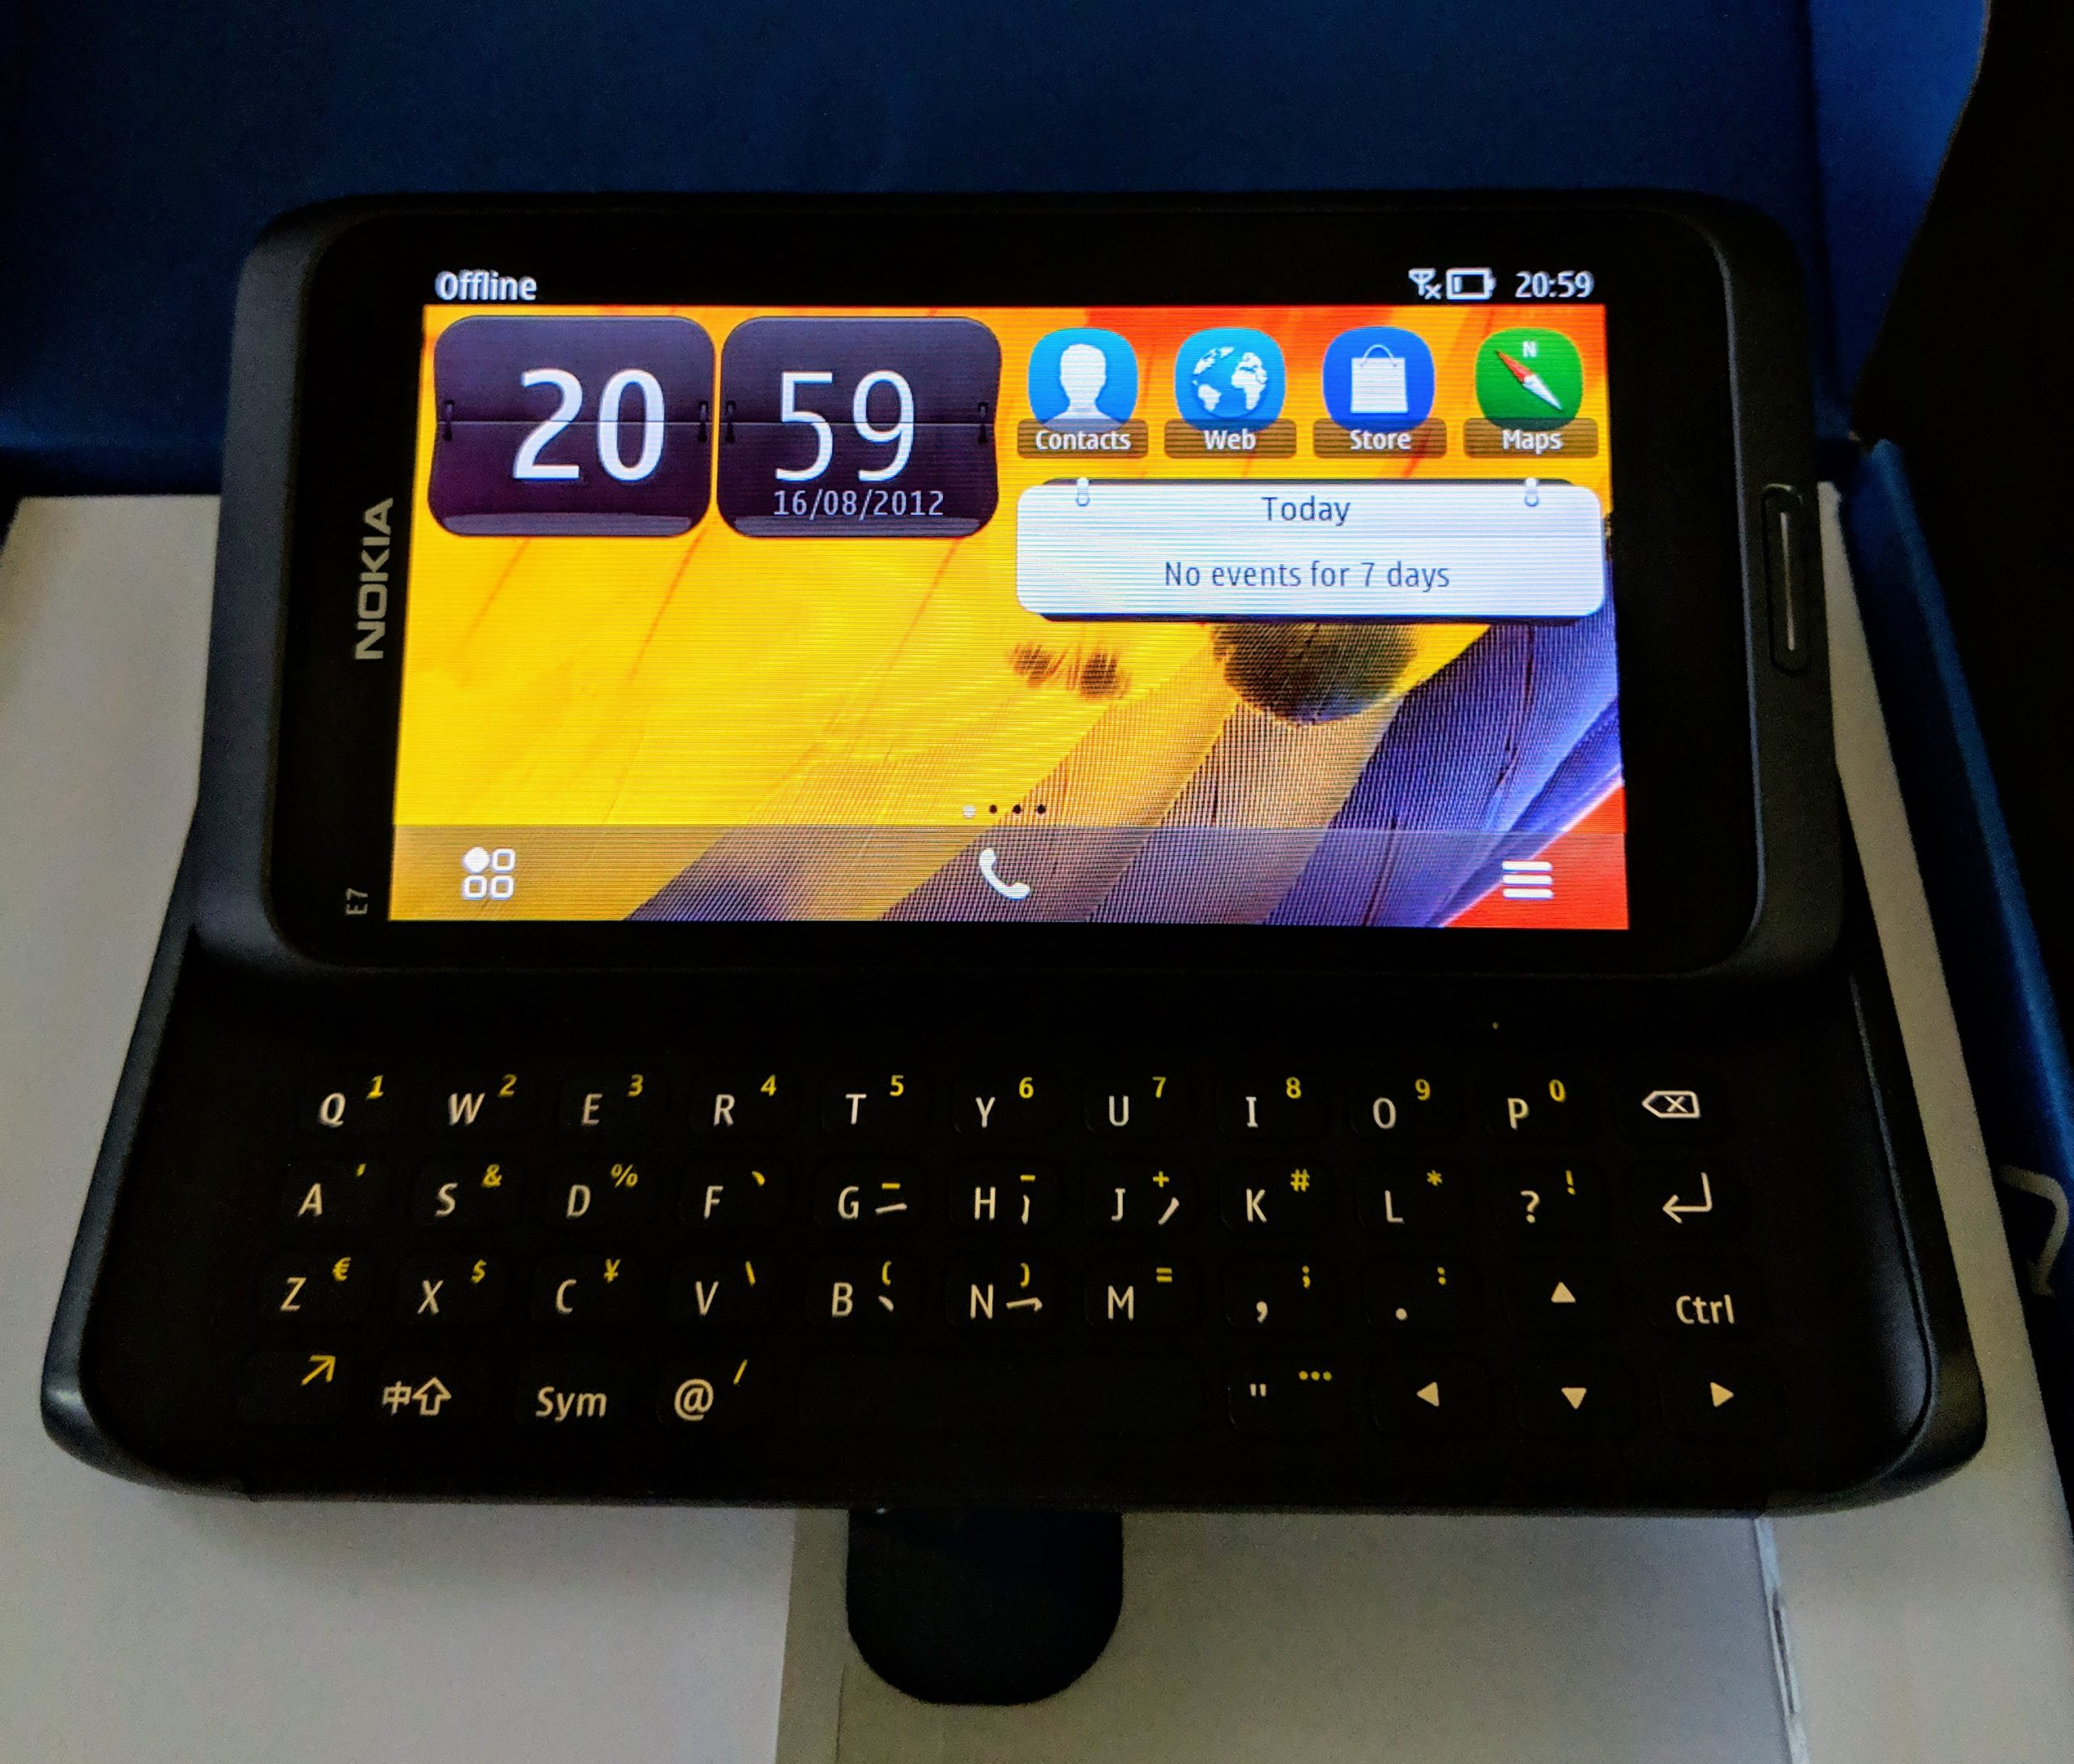 Nokia E7 in landscape orientation, keyboard out, and powered on